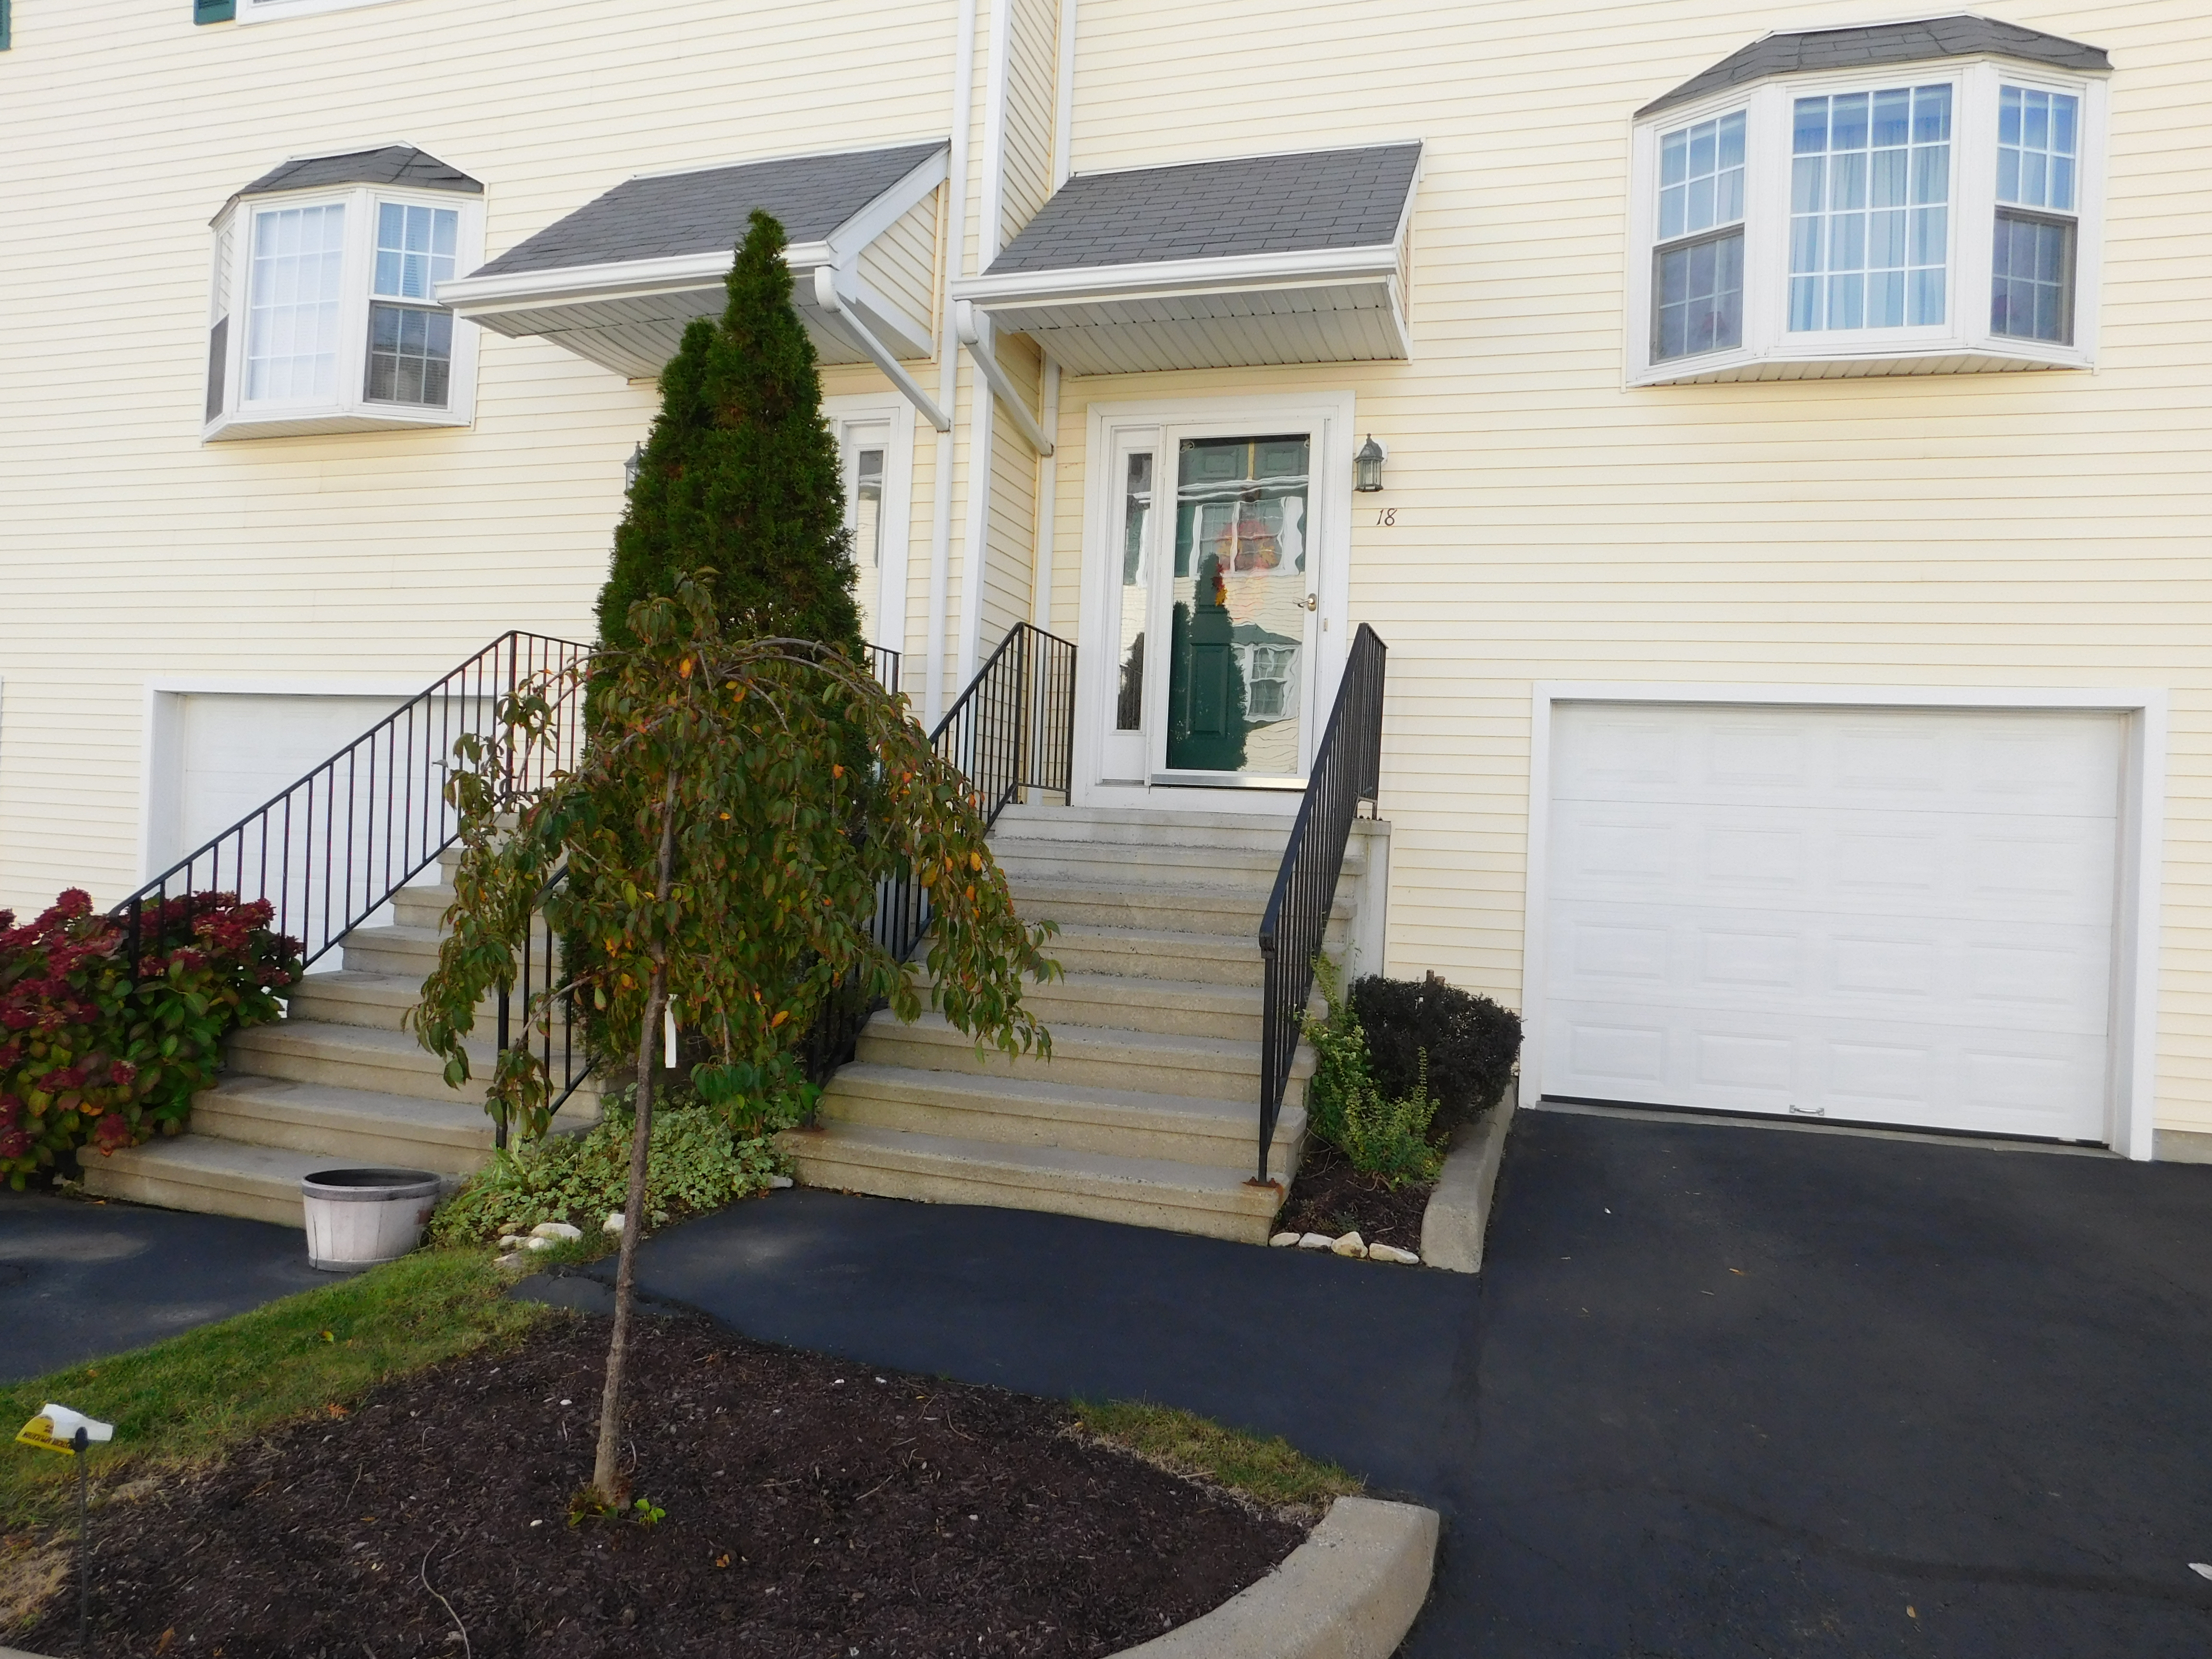 Modern 2 Bedroom Townhomes In Downtown Danbury,CT